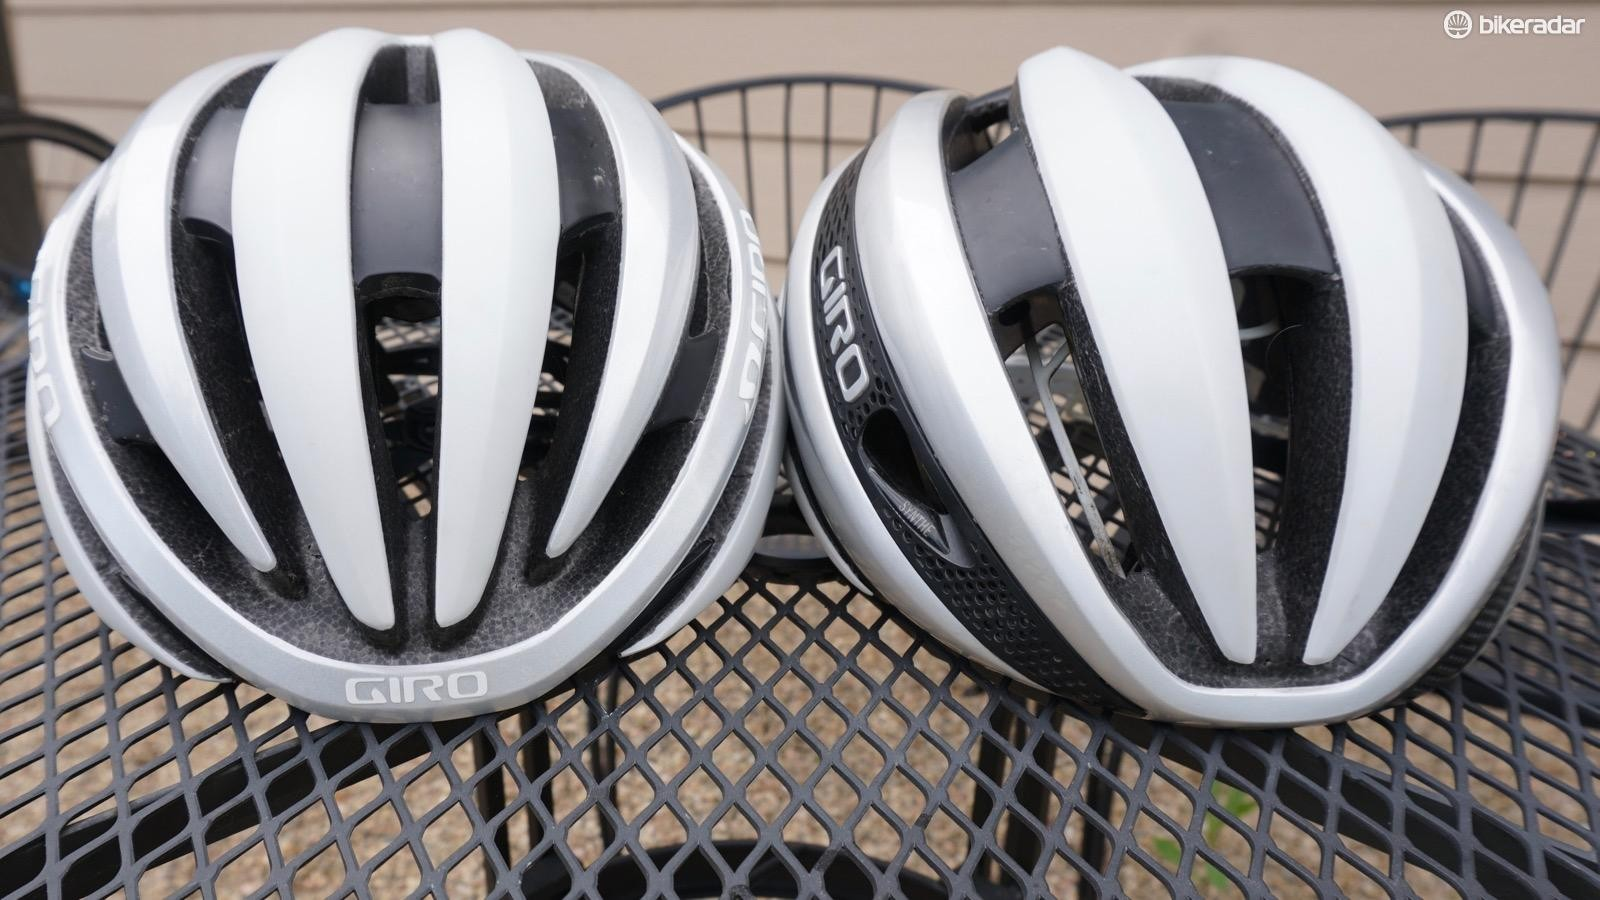 The $150 / £125 Cinder (left) and the top-end $270 / £225 Synthe